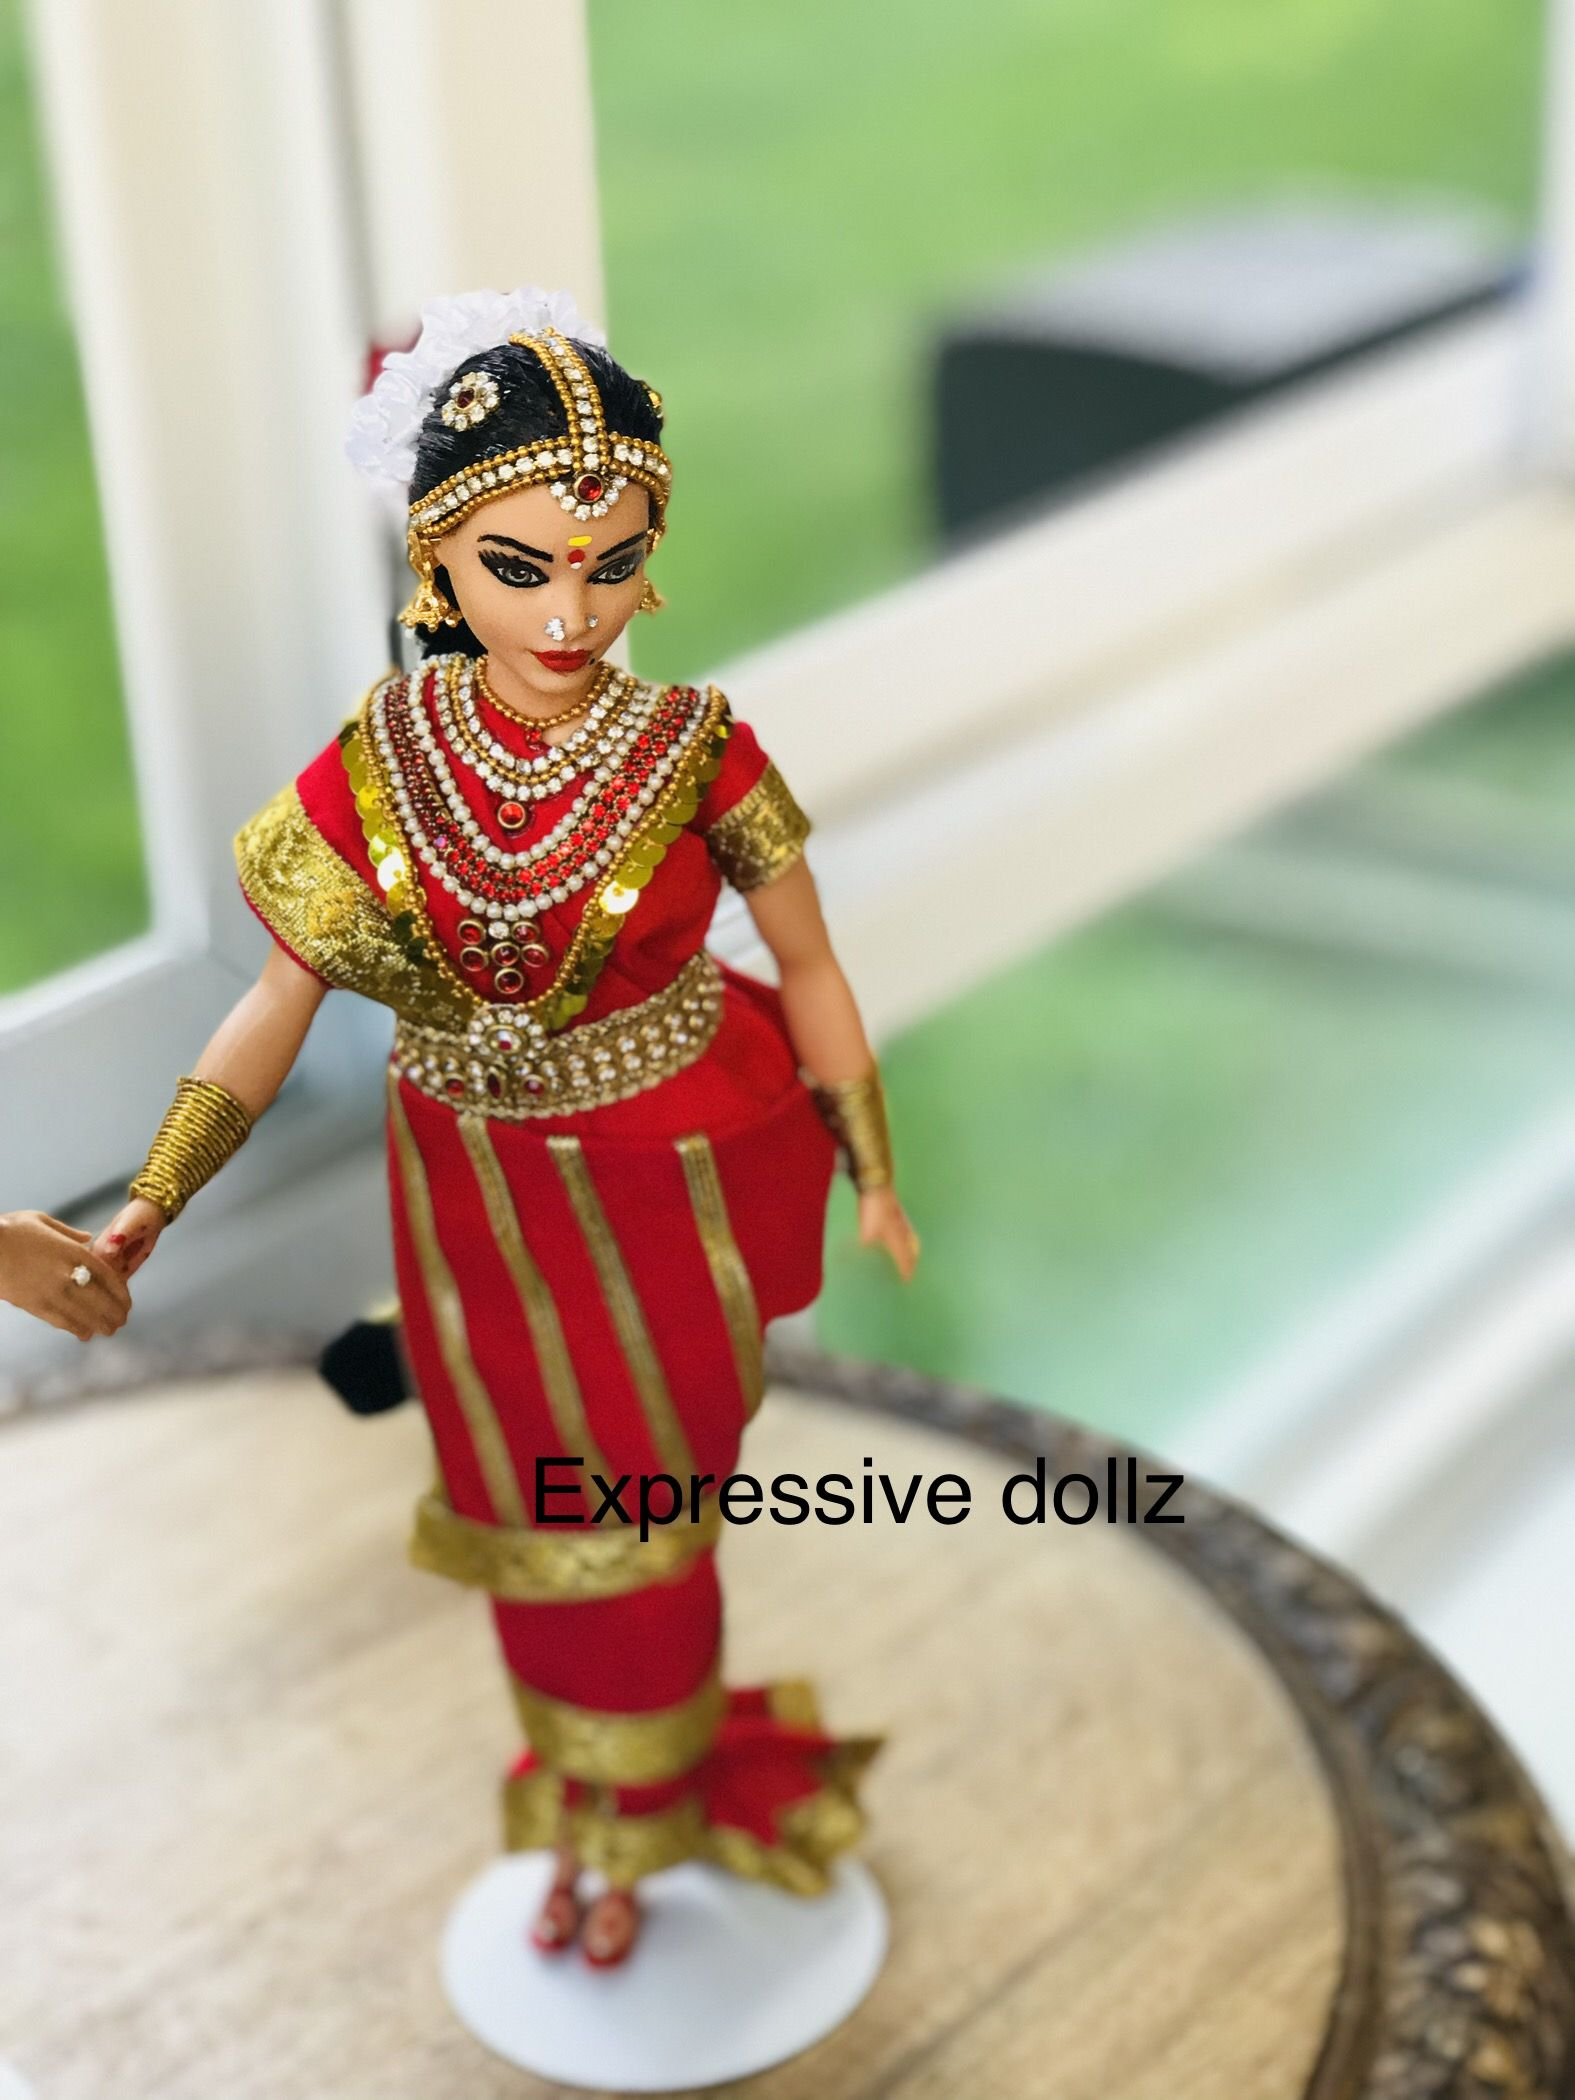 Kondapalli toys images  Pin by Expressive dollz on My creations in   Pinterest  Dolls